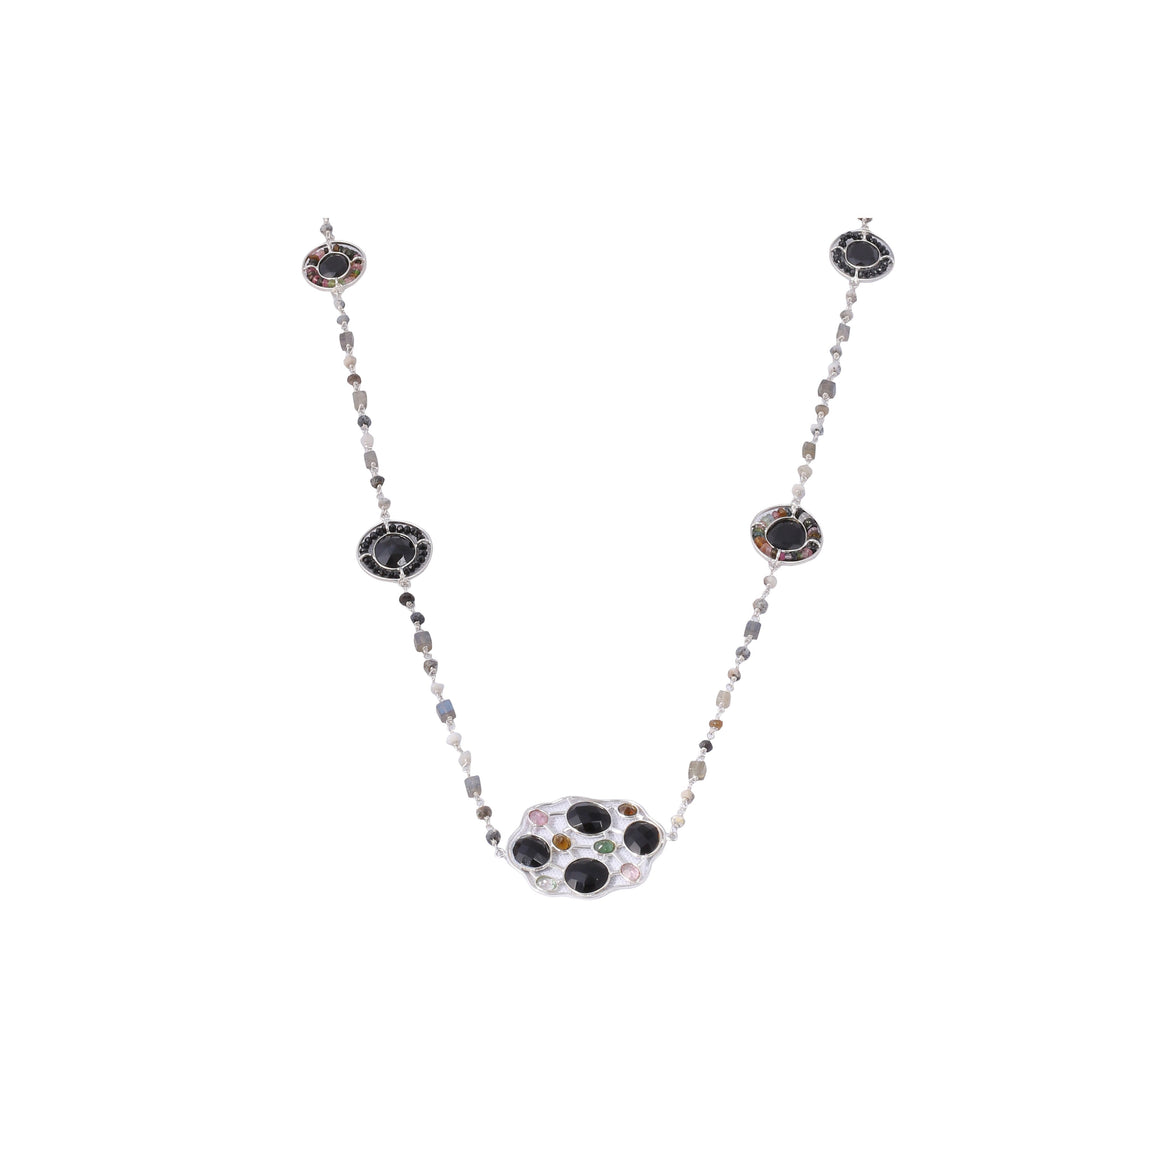 Sabyavi Pendant Black Onyx and Tourmaline Lariat Sterling Silver